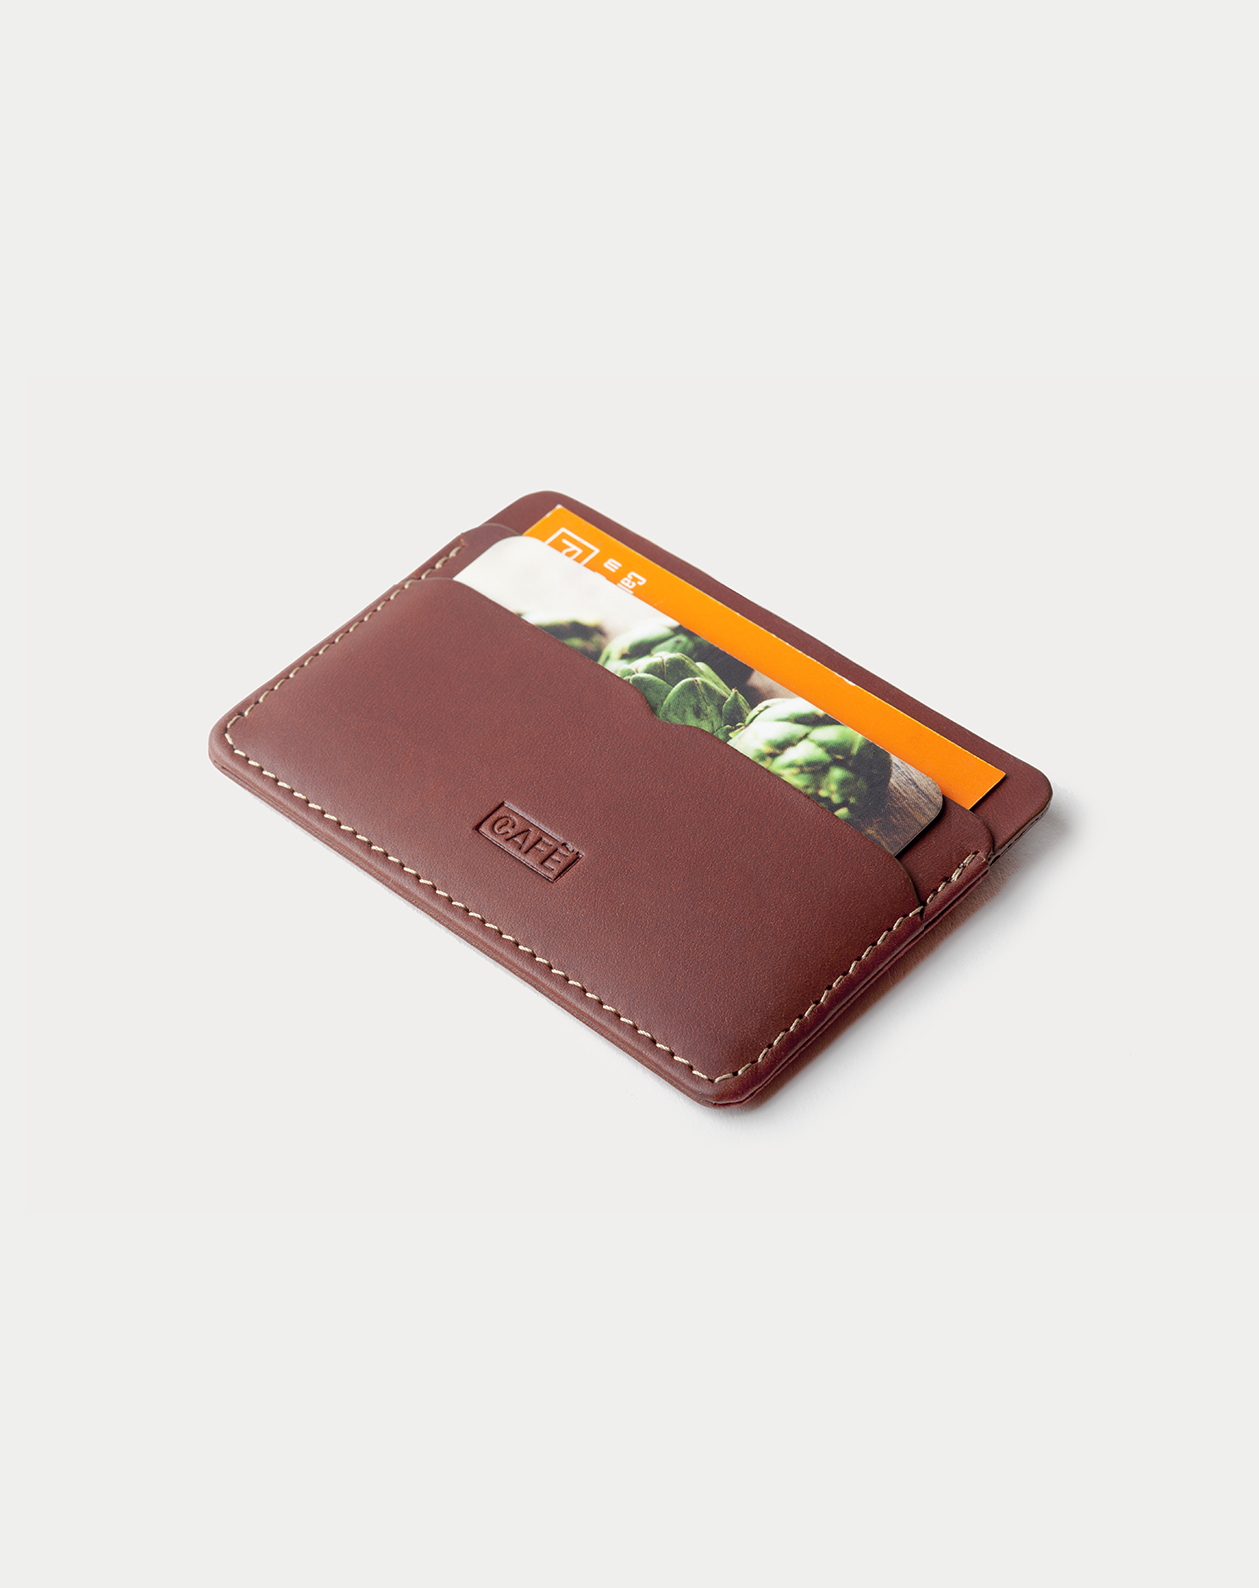 Leather Card Holder Panama + Roasted with five pockets. Tarjetero de piel Panama + Roasted con cinco compartimentos. v3